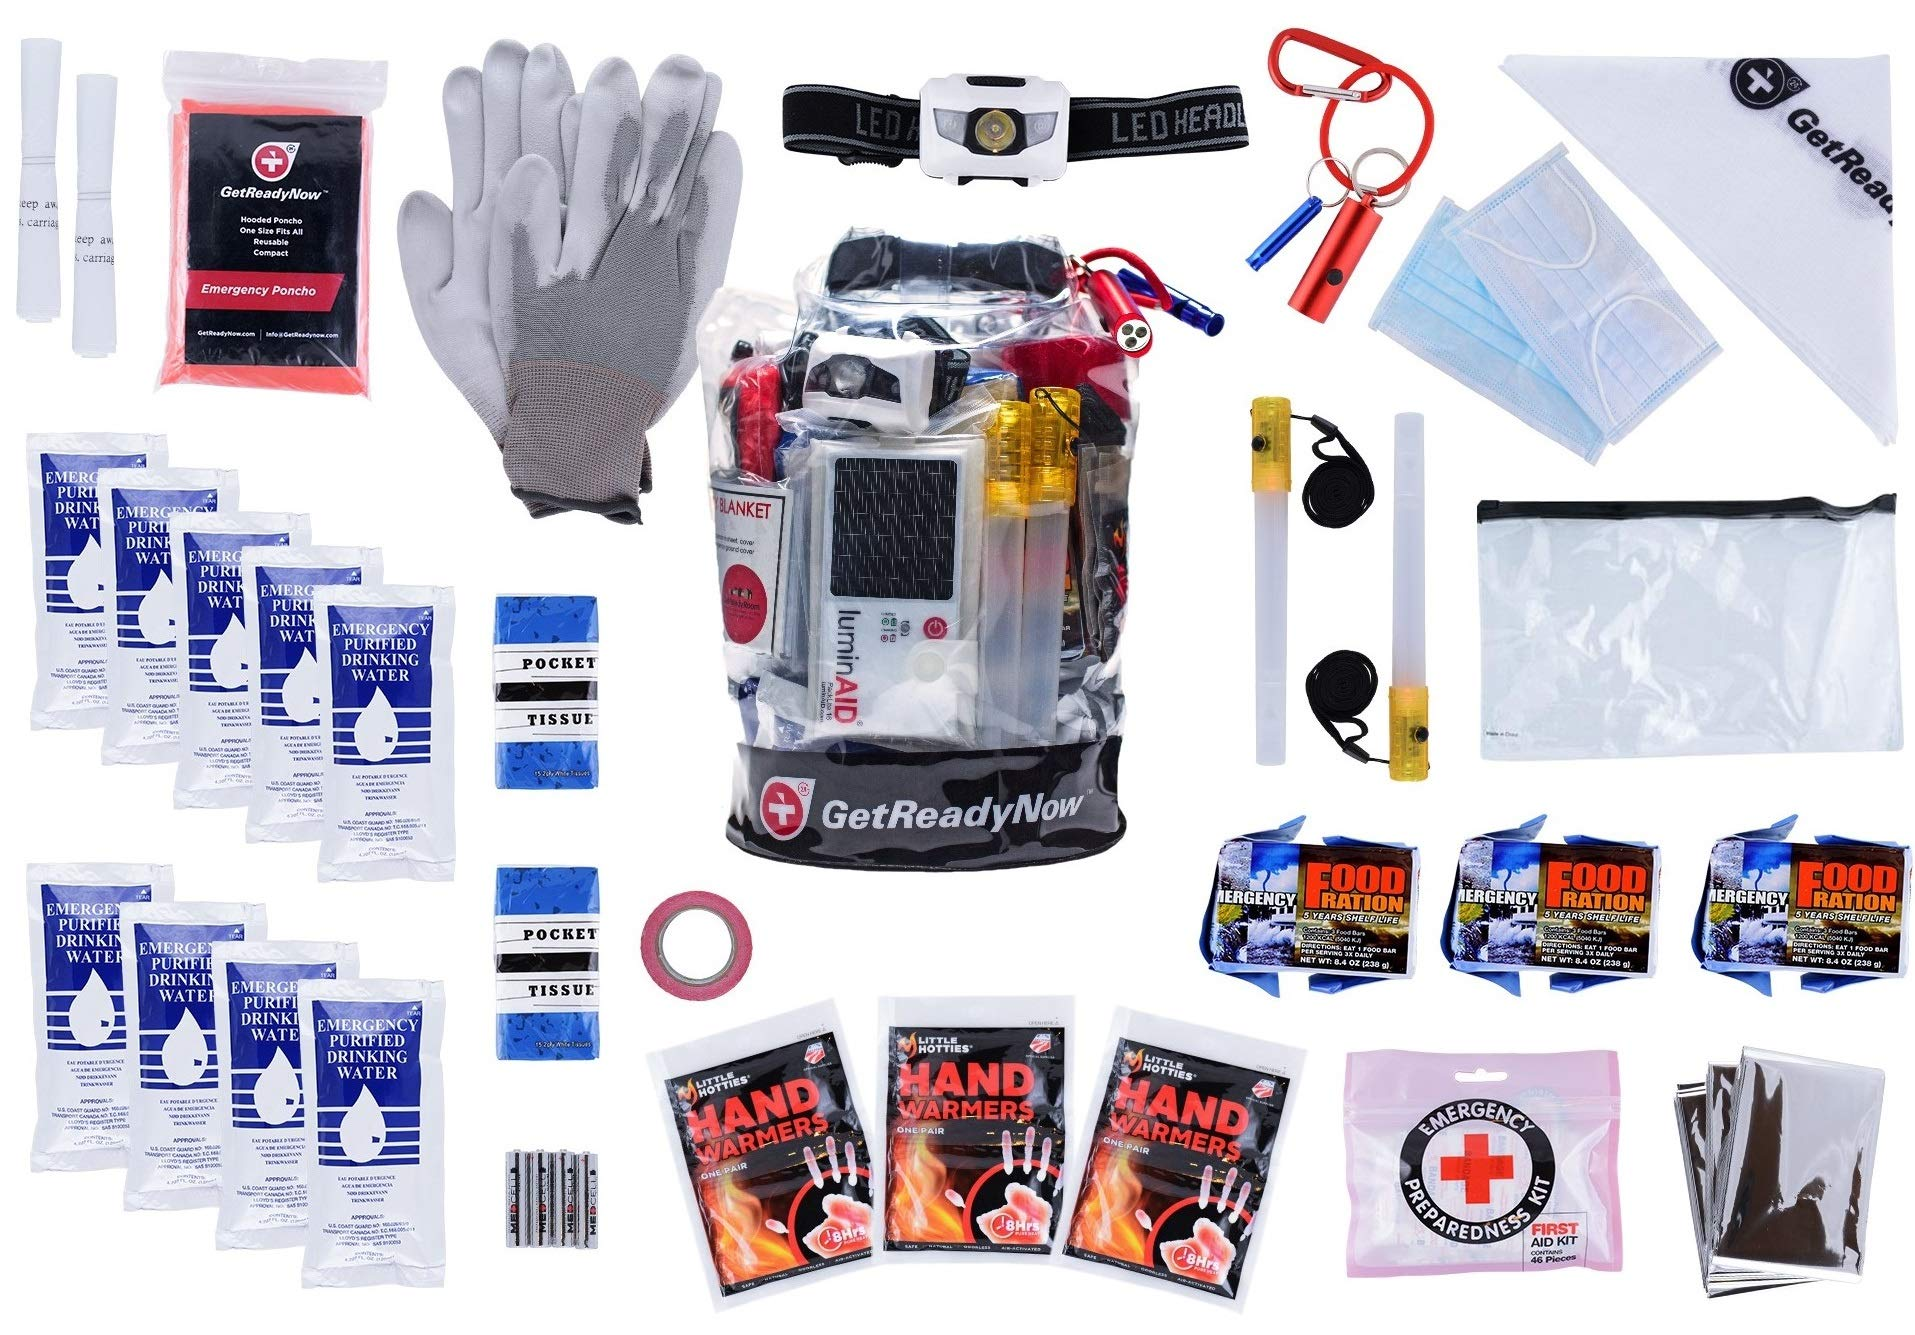 GETREADYNOW 72-Hour kit Grab & Go Emergency Kit with Essential Survival Supplies for 3 Days - Hurricane, Earthquake, Tornado Disaster Preparedness Kit - Heavy Duty Waterproof Bag by GETREADYNOW